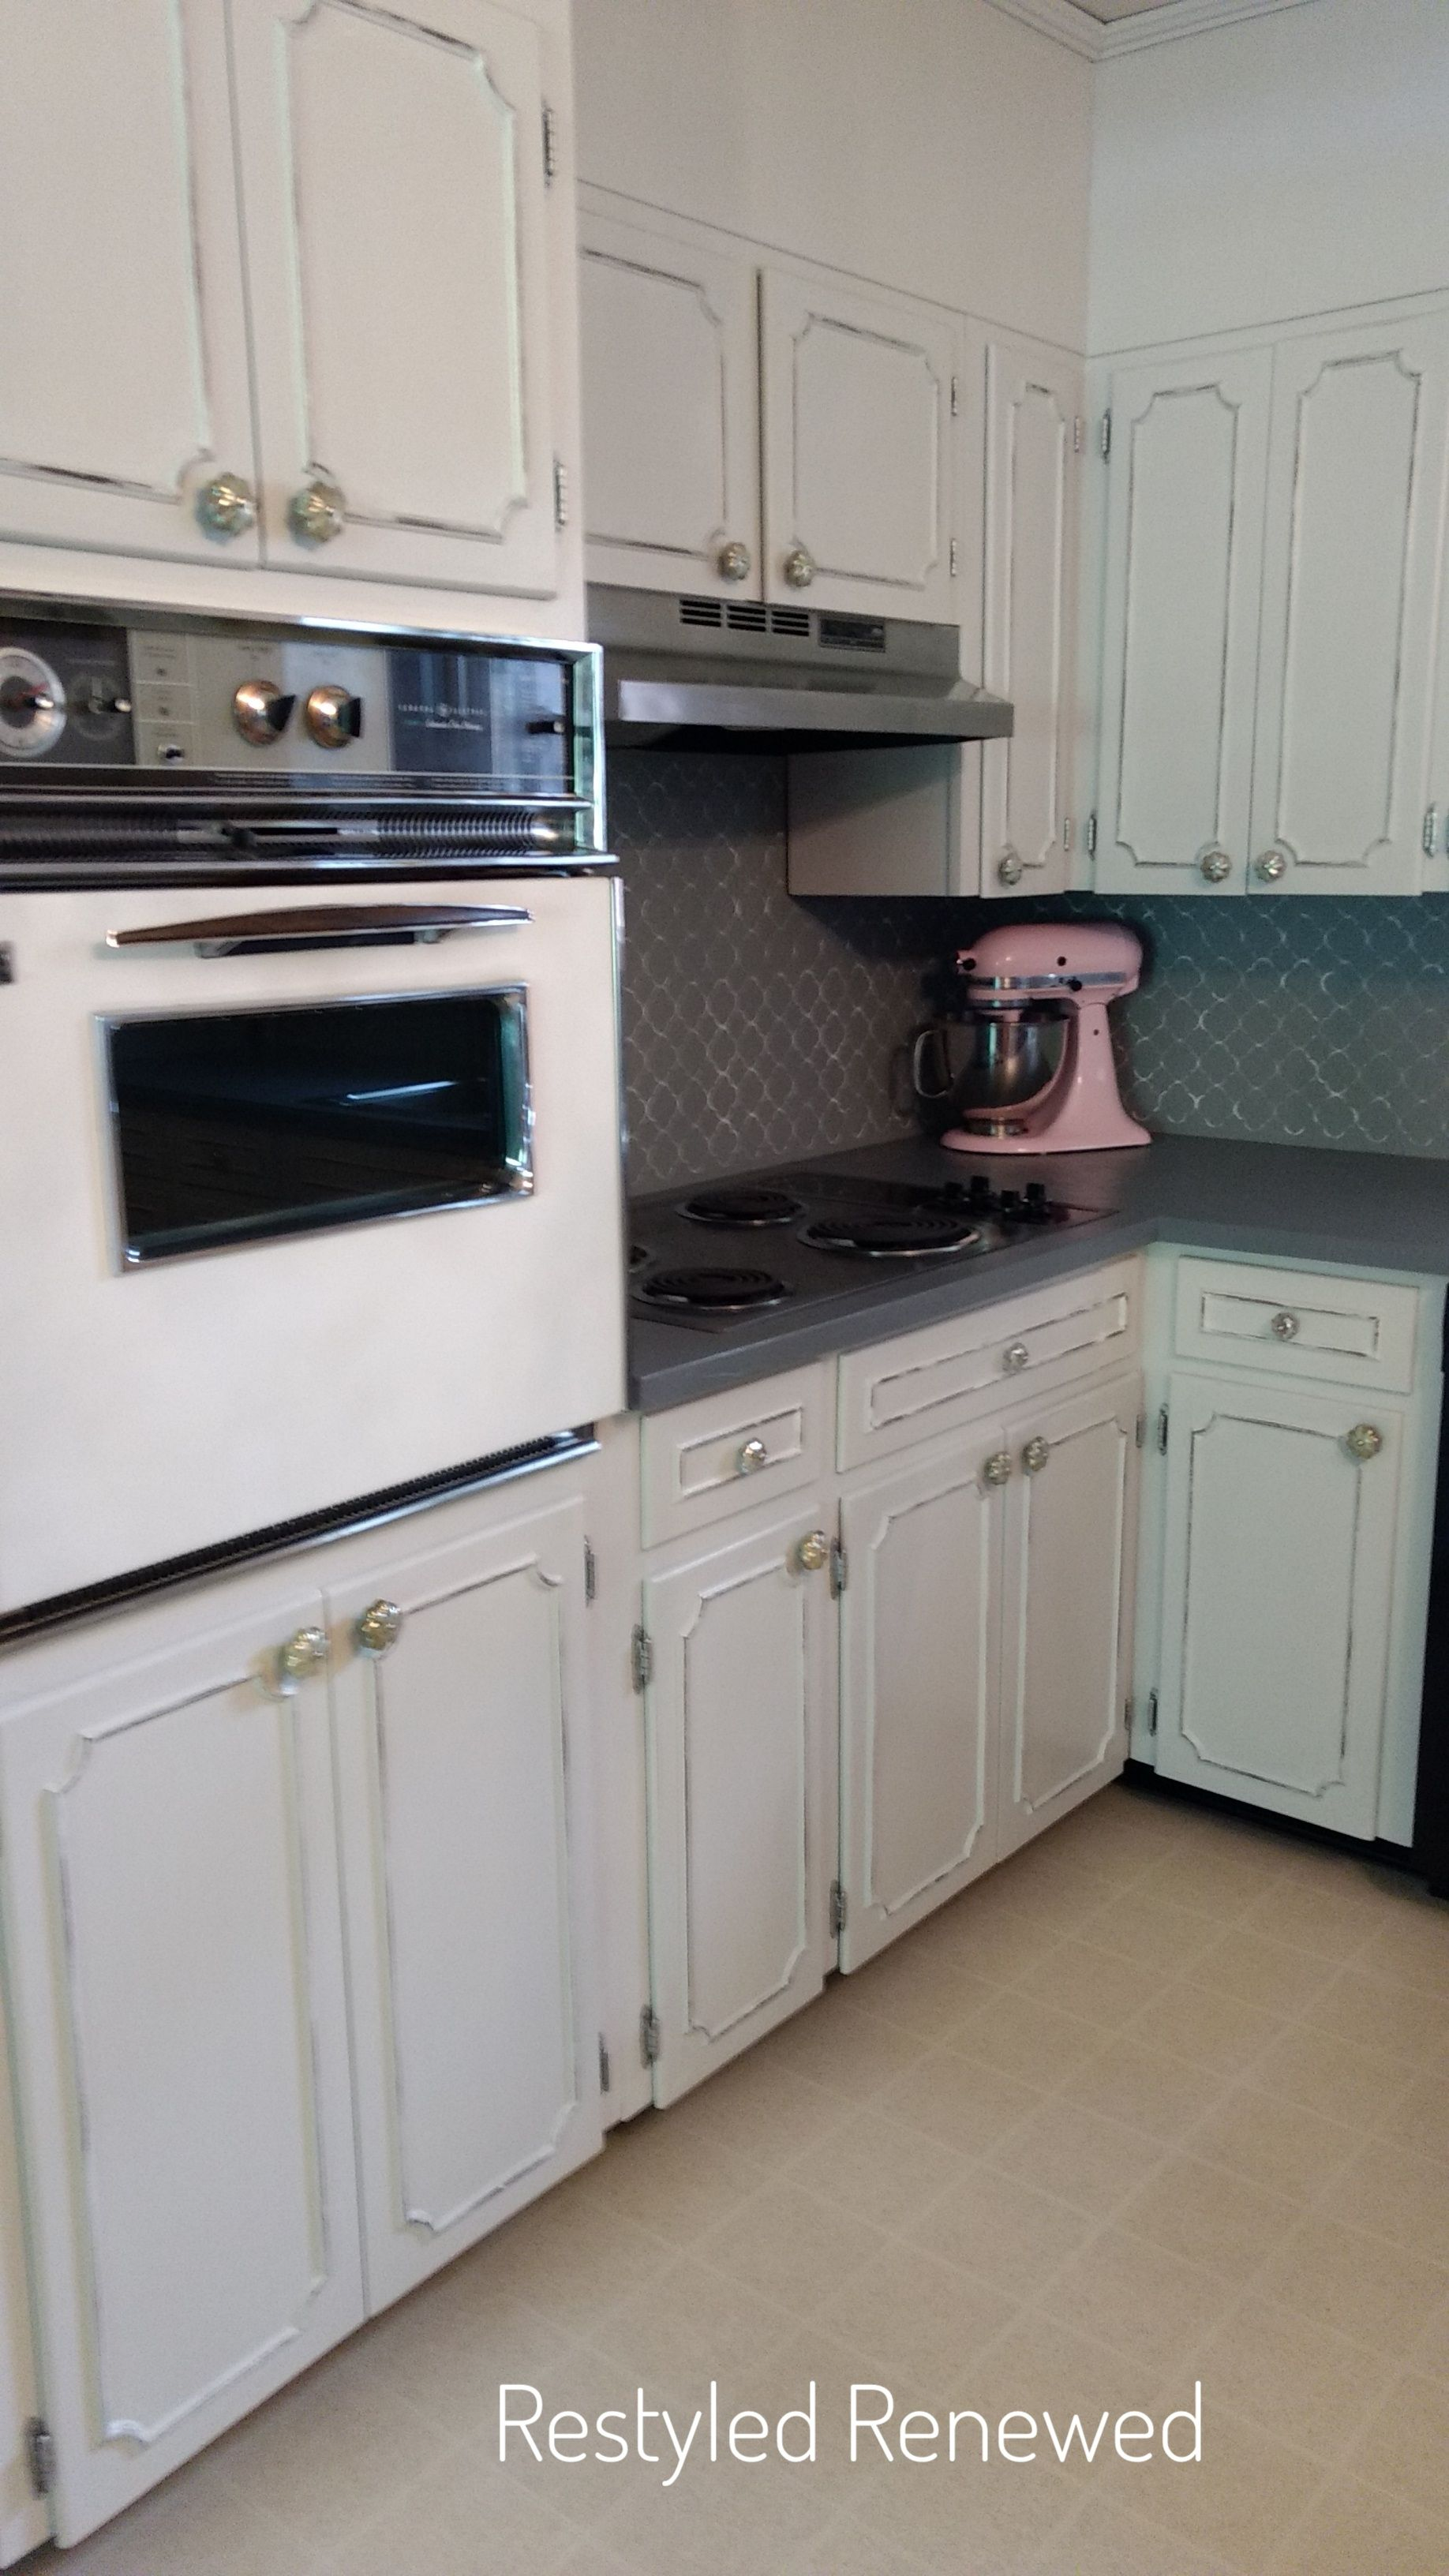 Our Kitchen Makeover Kitchen Diy Makeover 1970s Kitchen Remodel Kitchen Cupboards Paint Painting 1970s kitchen cabinets